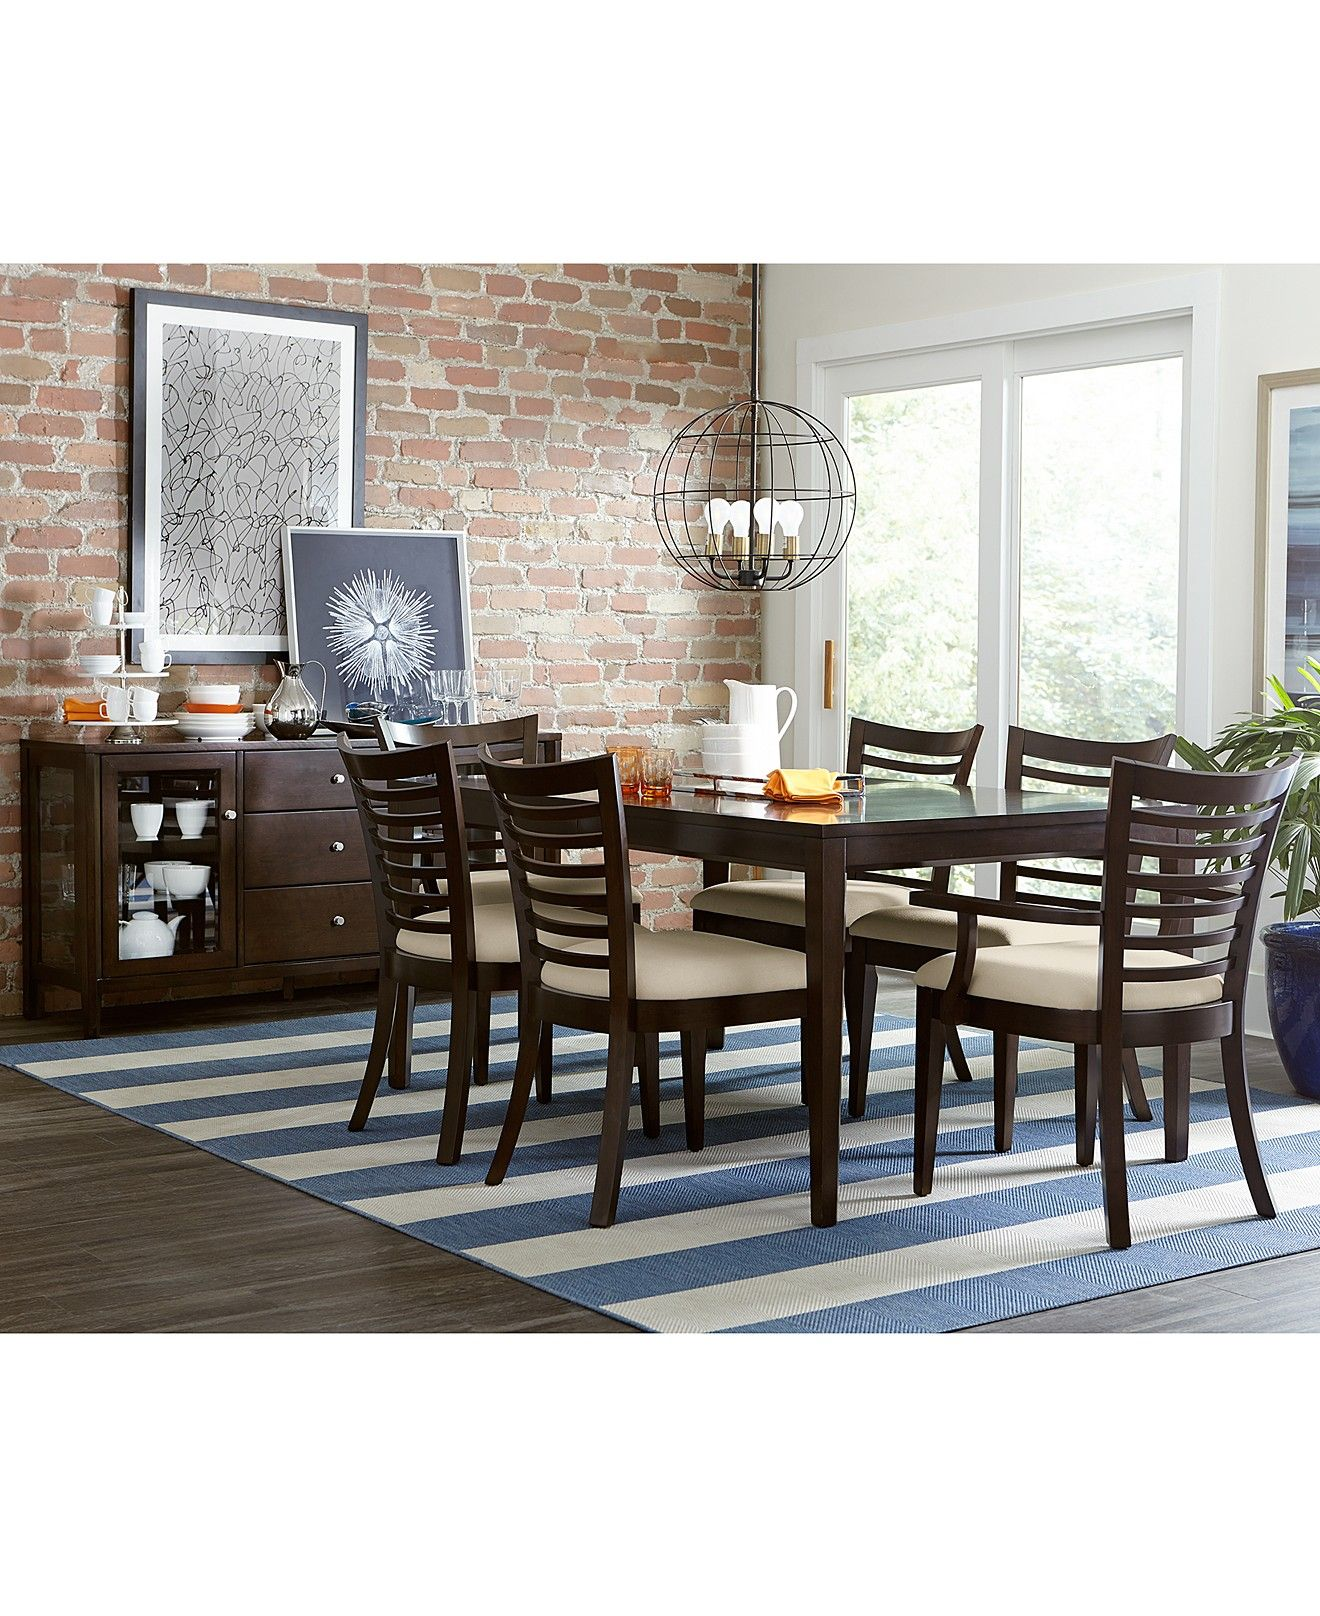 Brisbane dining furniture collection room